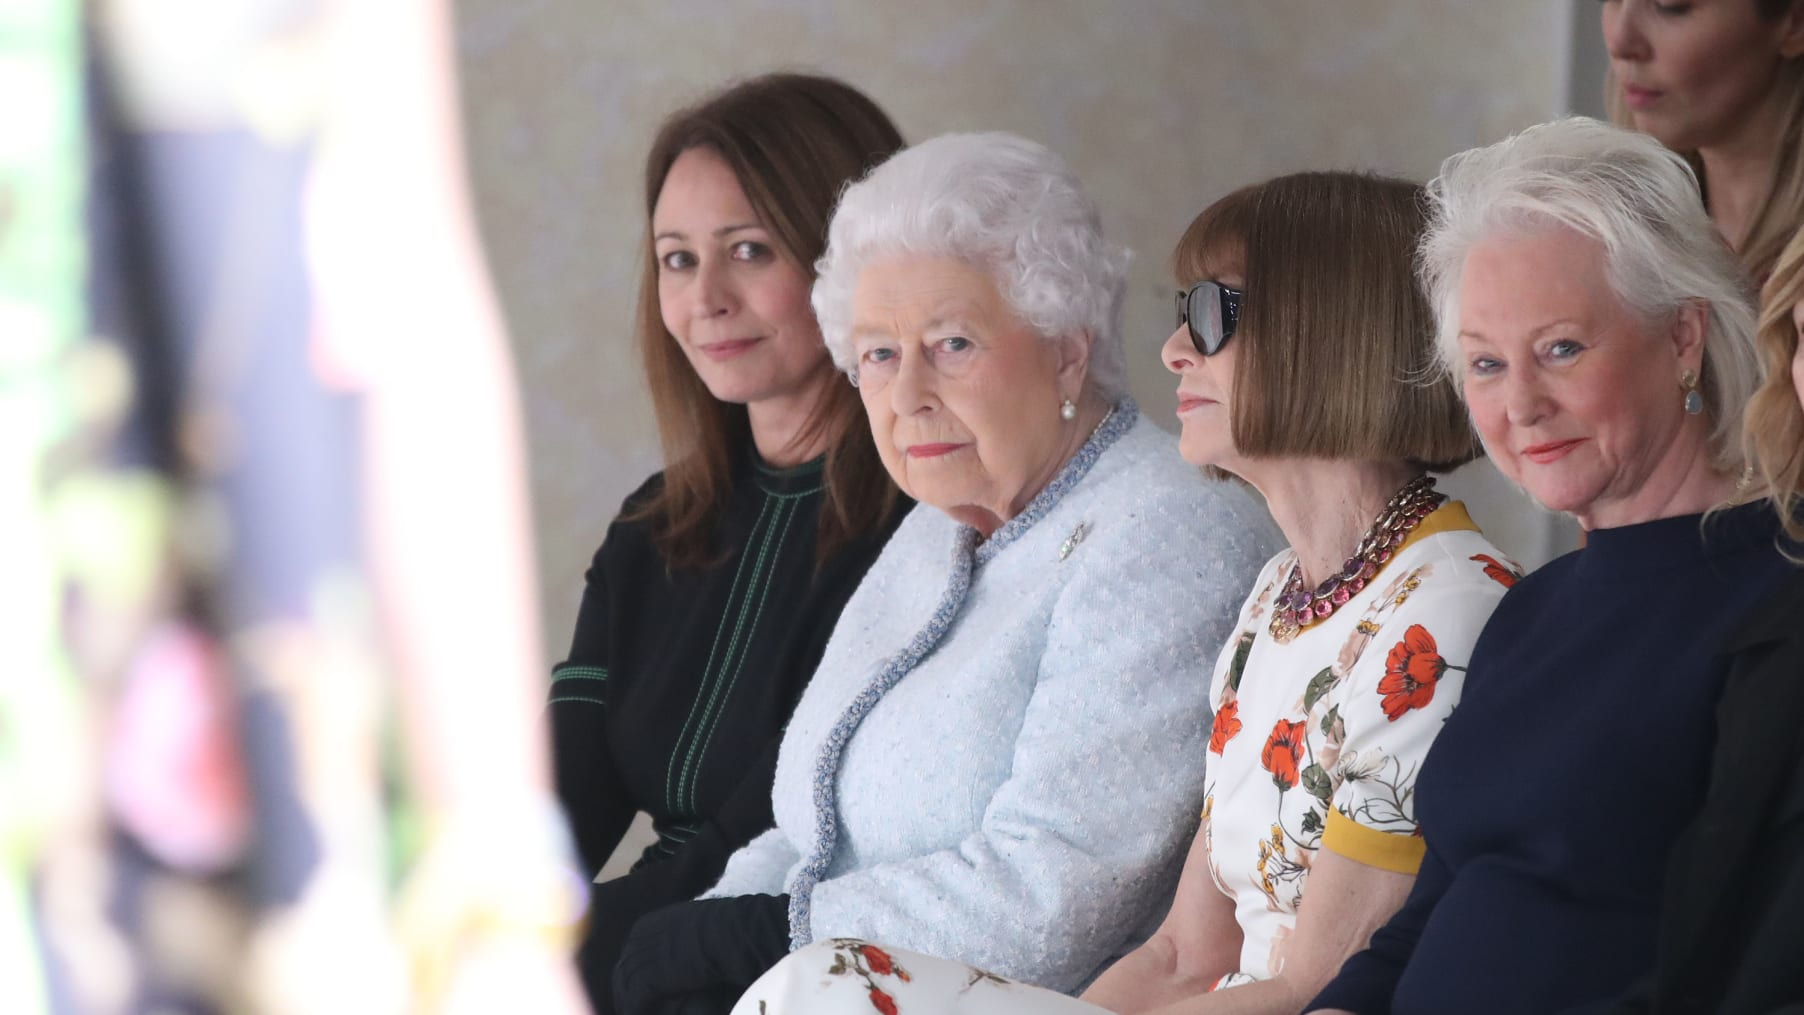 Queen Elizabeth joins Anna Wintour on front row of London Fashion Week - CNN Style